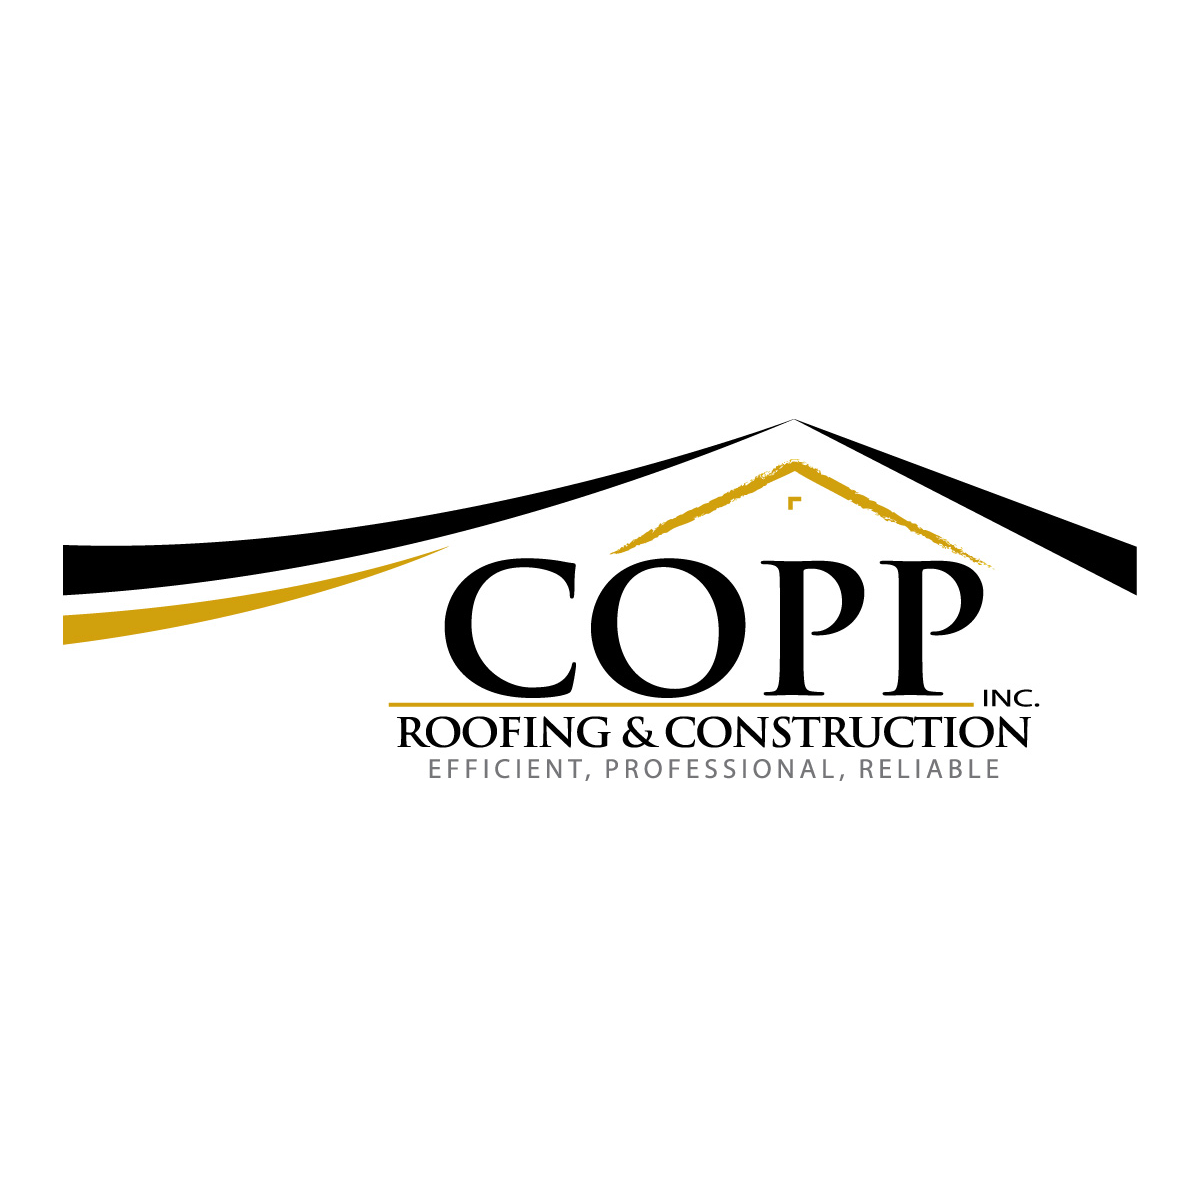 Copp Roofing & Construction, Inc. - Blue Jay, CA 92317 - (909)336-4074 | ShowMeLocal.com